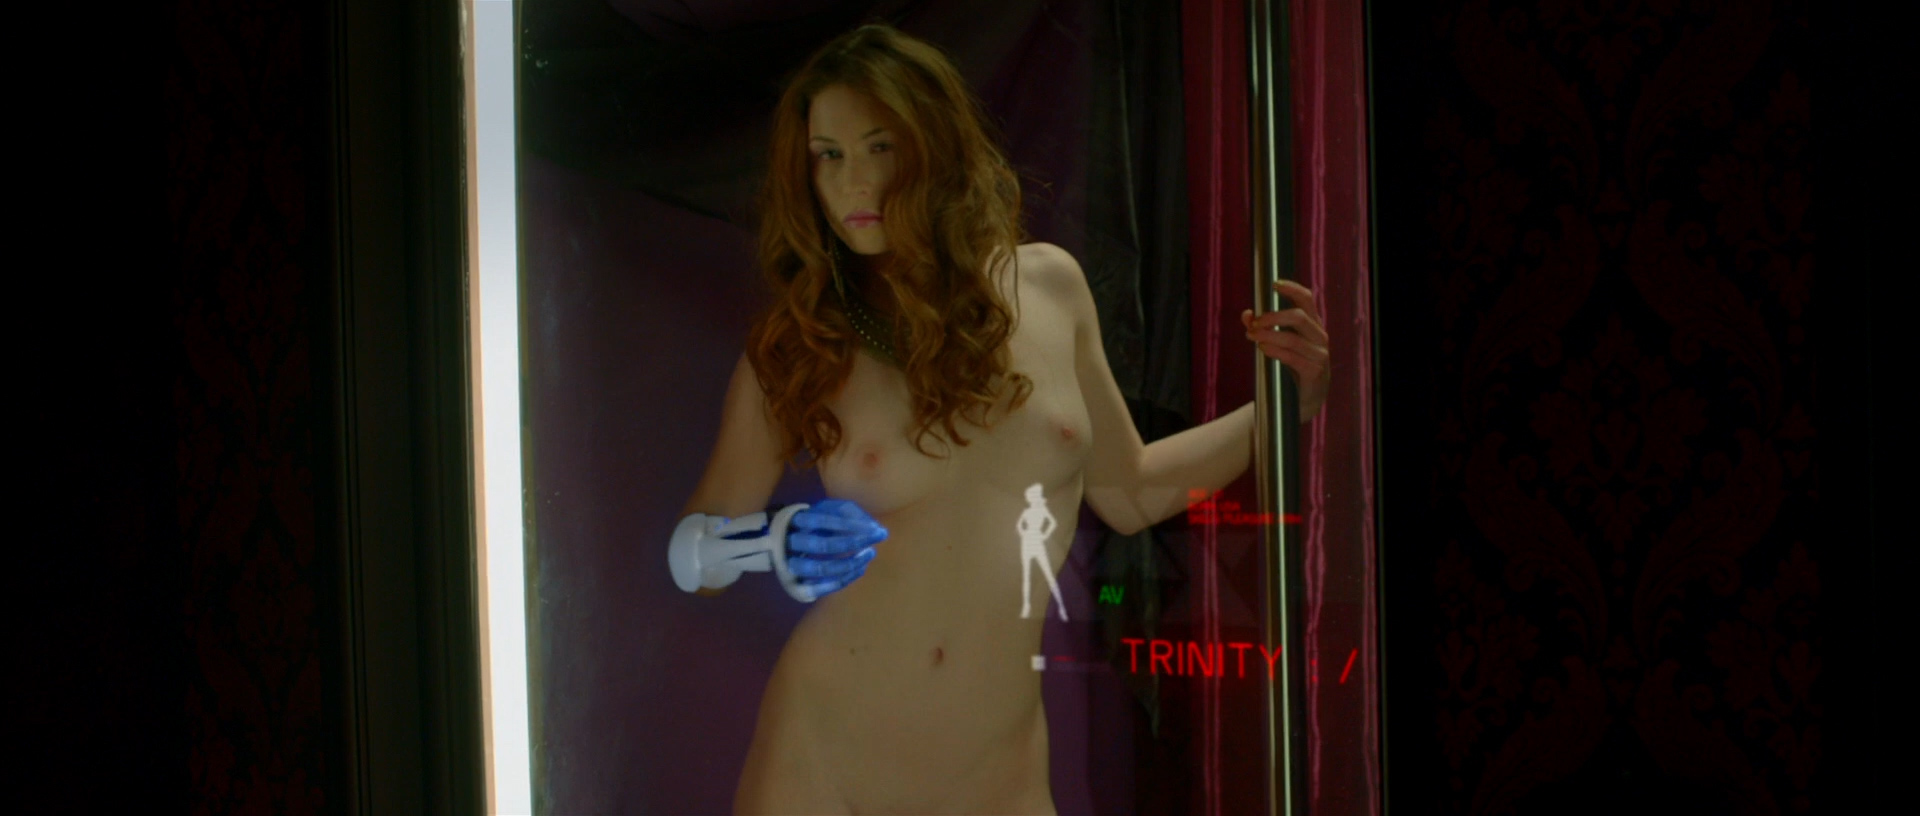 Alexis Knapp nude butt naked and very hot and few others full nude - The Anomaly (2014) hd1080p (15)